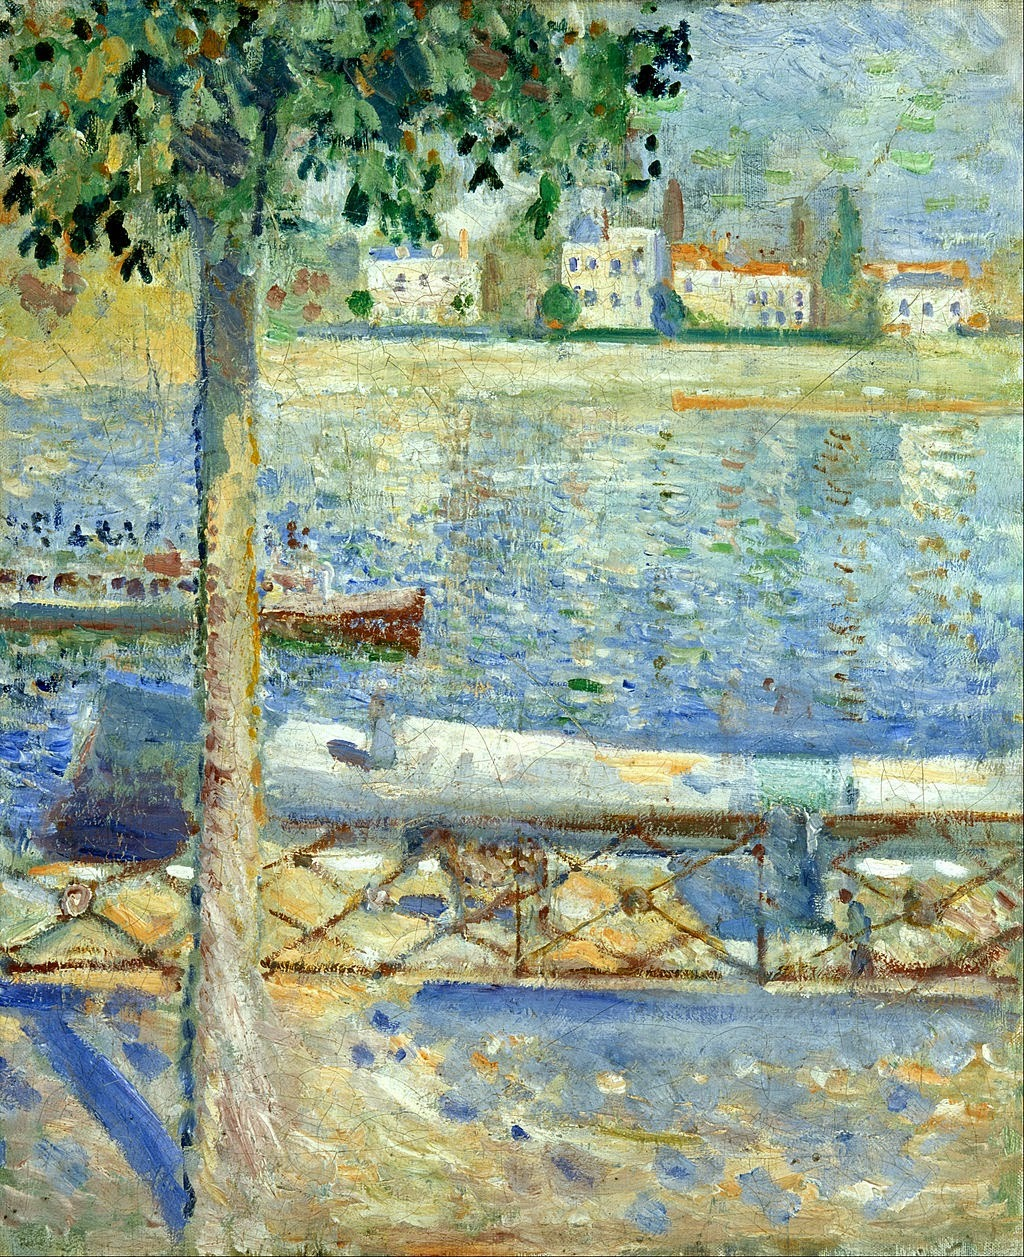 dappledwithshadow:  Edvard MunchThe Seine at Saint-Cloud 1890oil on canvas 46.5 x 38 cm